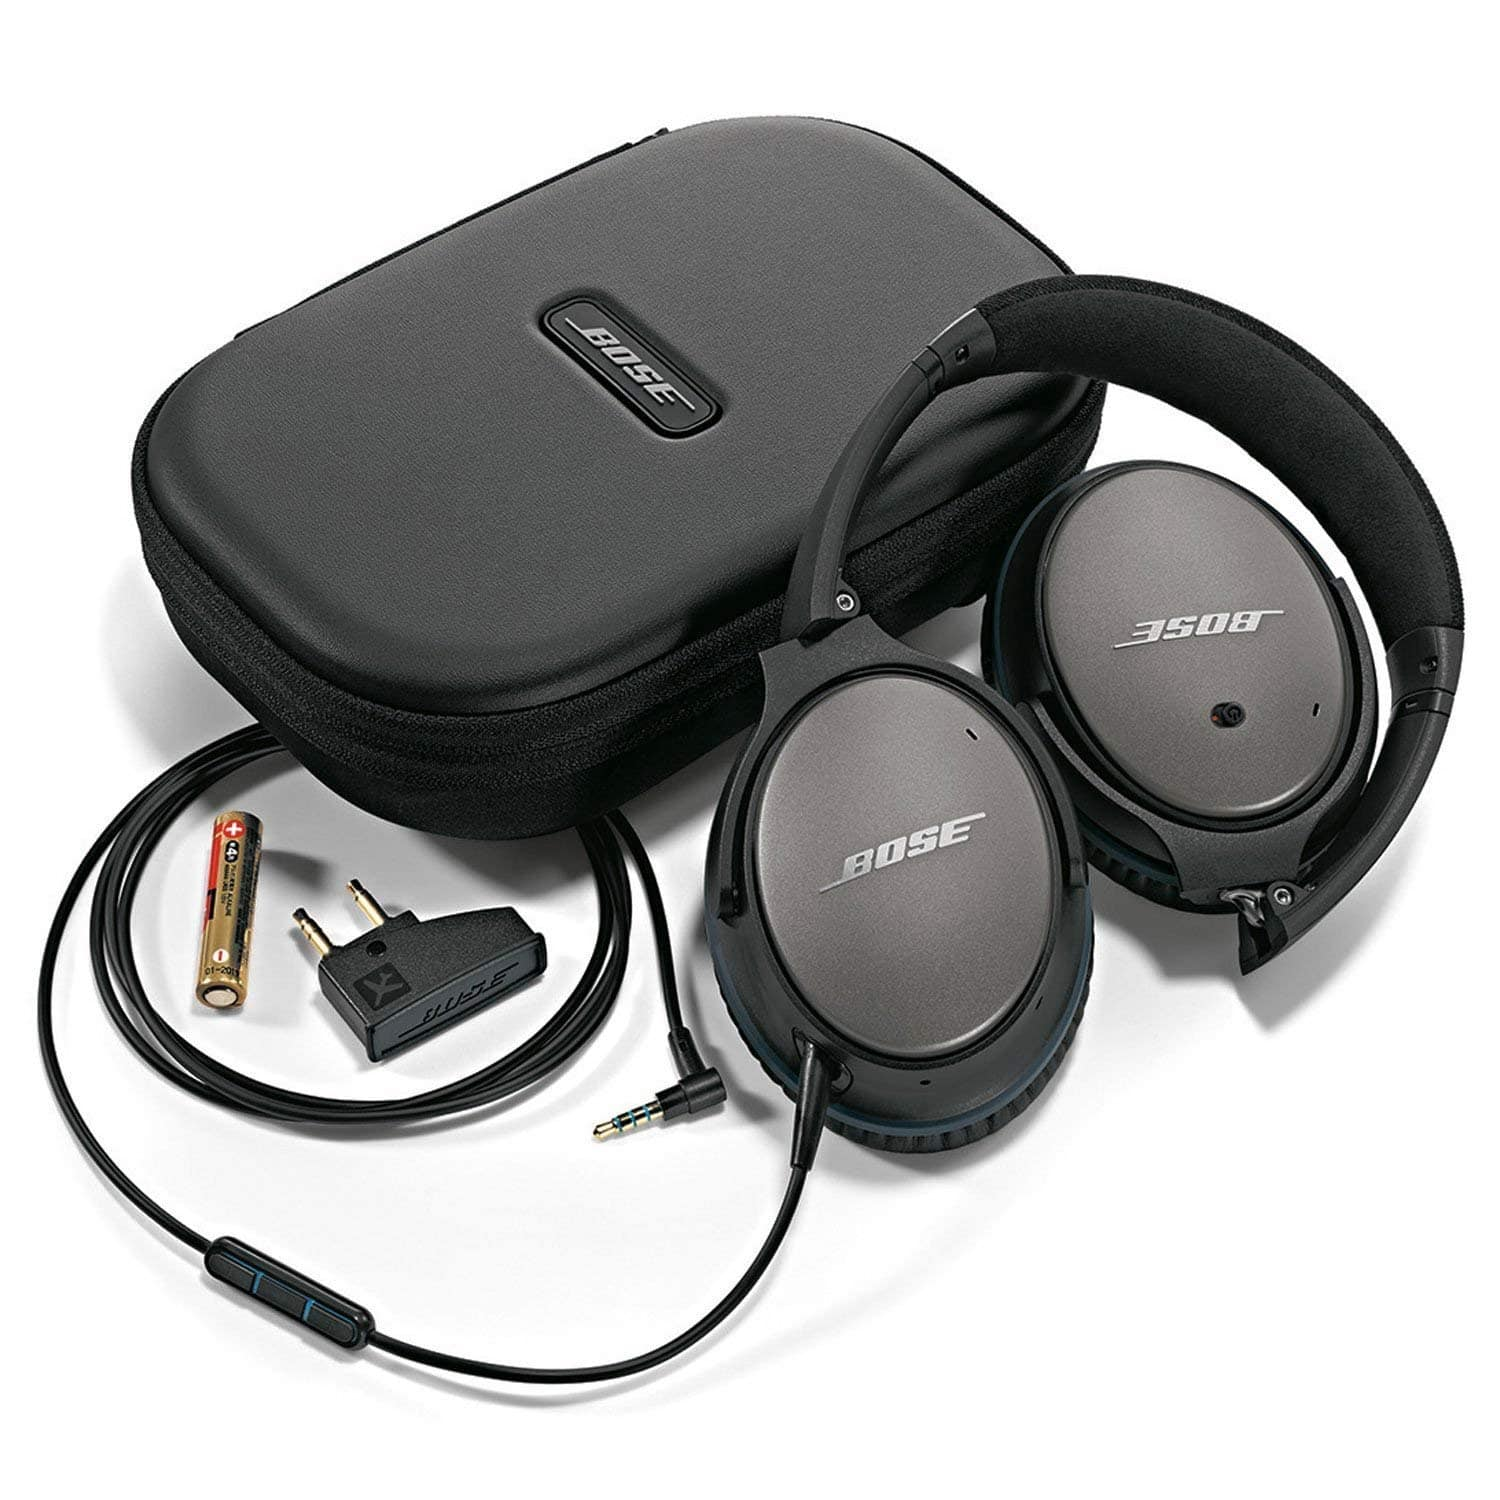 Bose QuietComfort 25 Acoustic Noise Cancelling Wired Headphones for Apple or Samsung/Android - $145 + Free Shipping